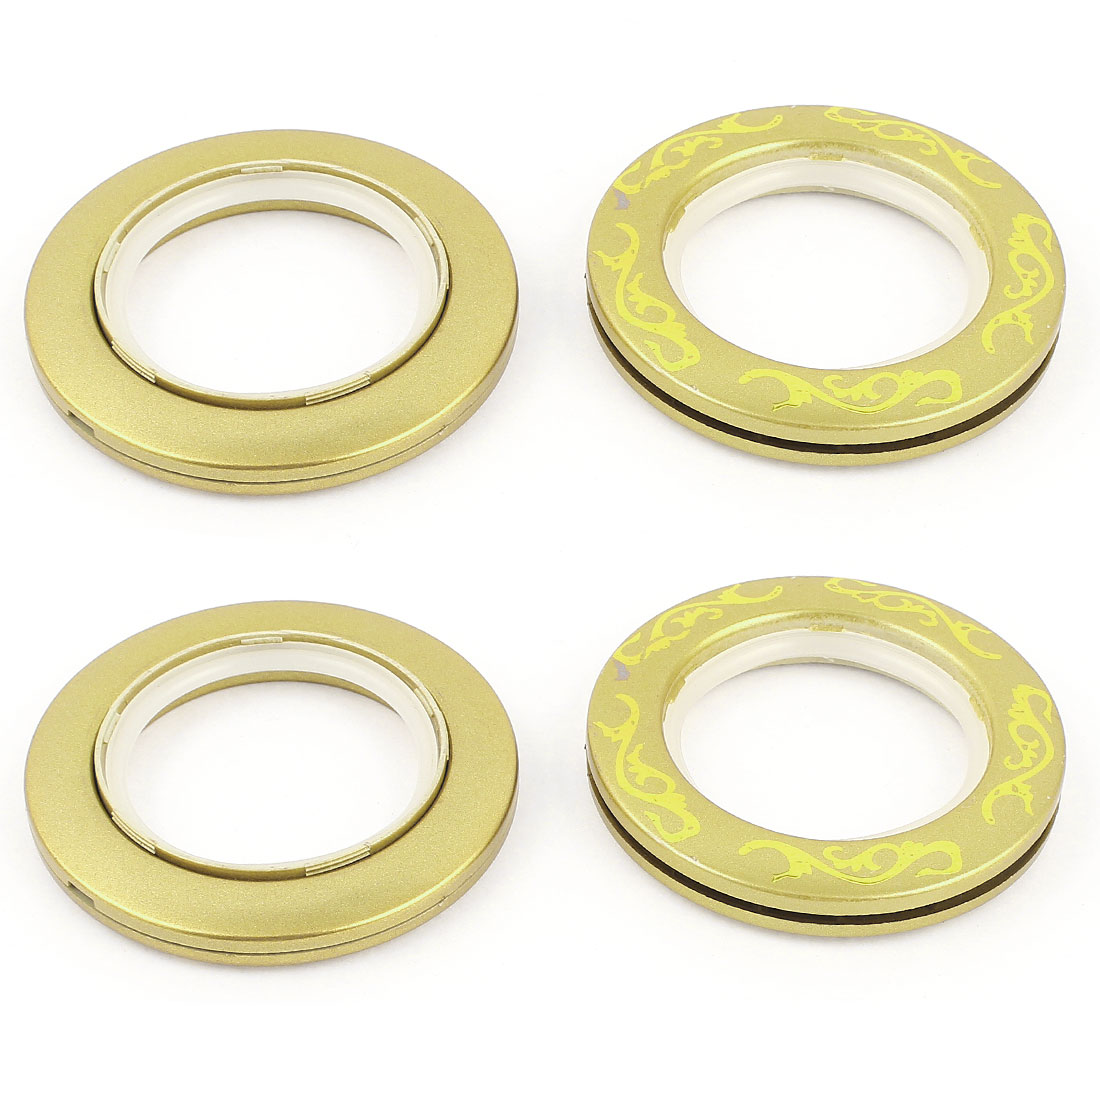 Home Flower Print Round Shape Curtain Rings 44mm Inside Dia Yellow 6 Pcs